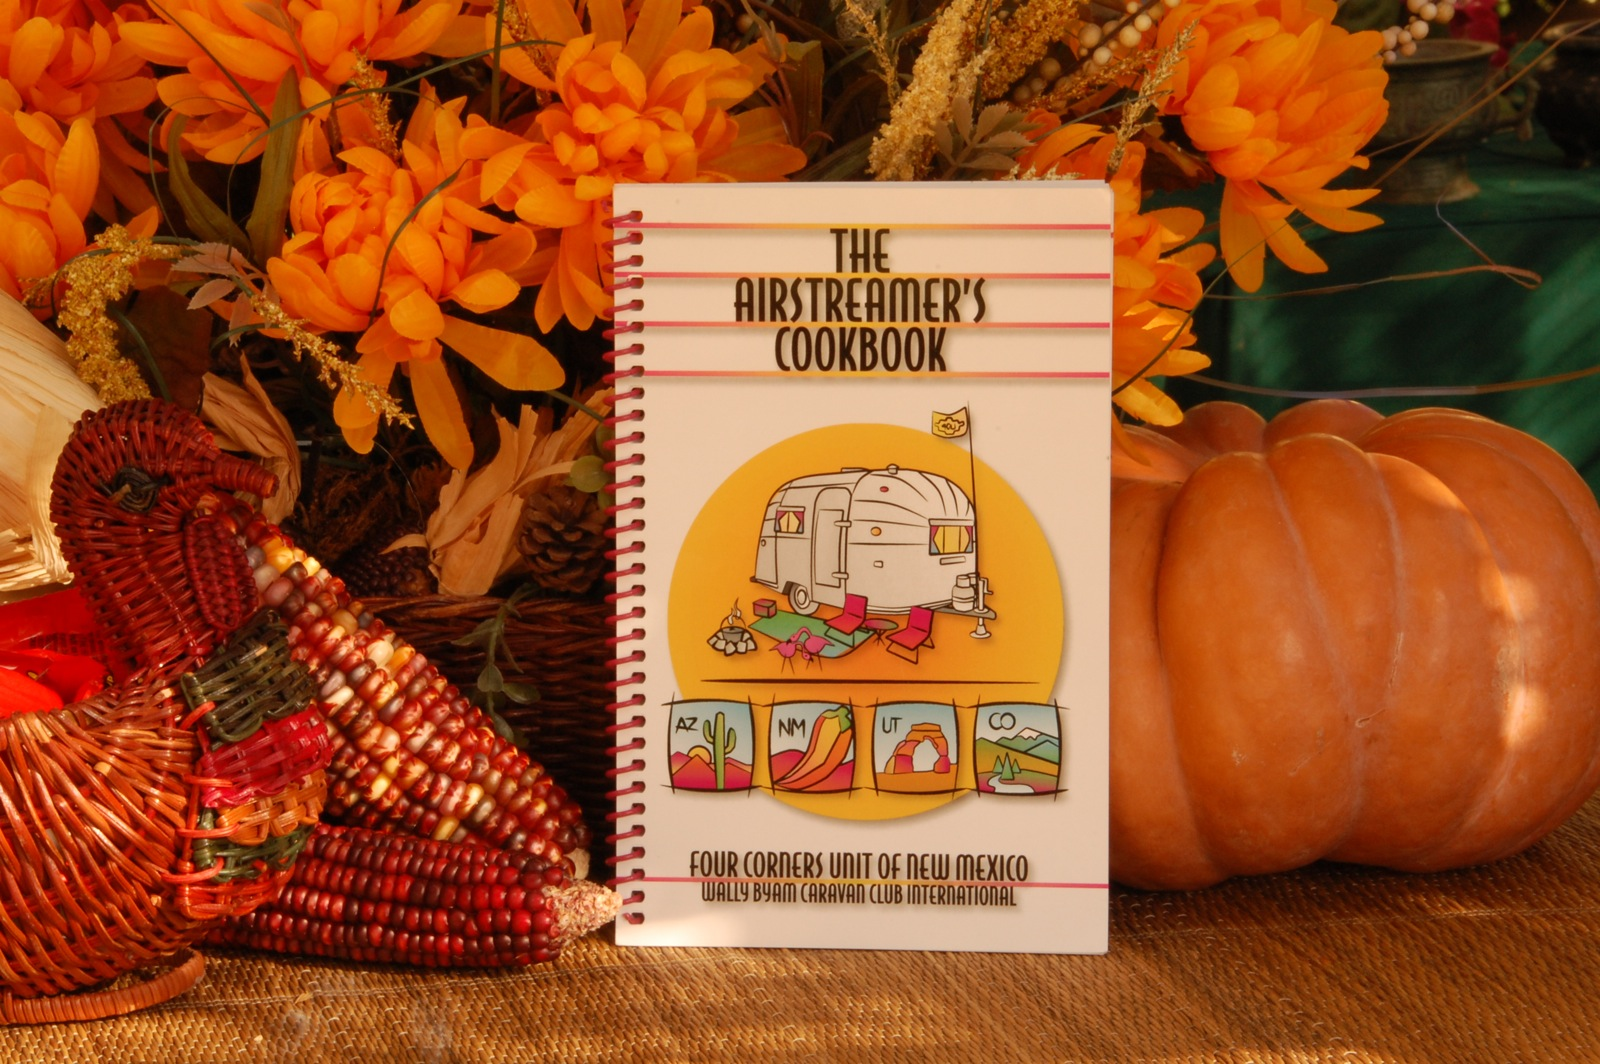 Click image for larger version  Name:DSC_0076 The Airstreamer's Cookbook.jpg Views:93 Size:505.3 KB ID:145923